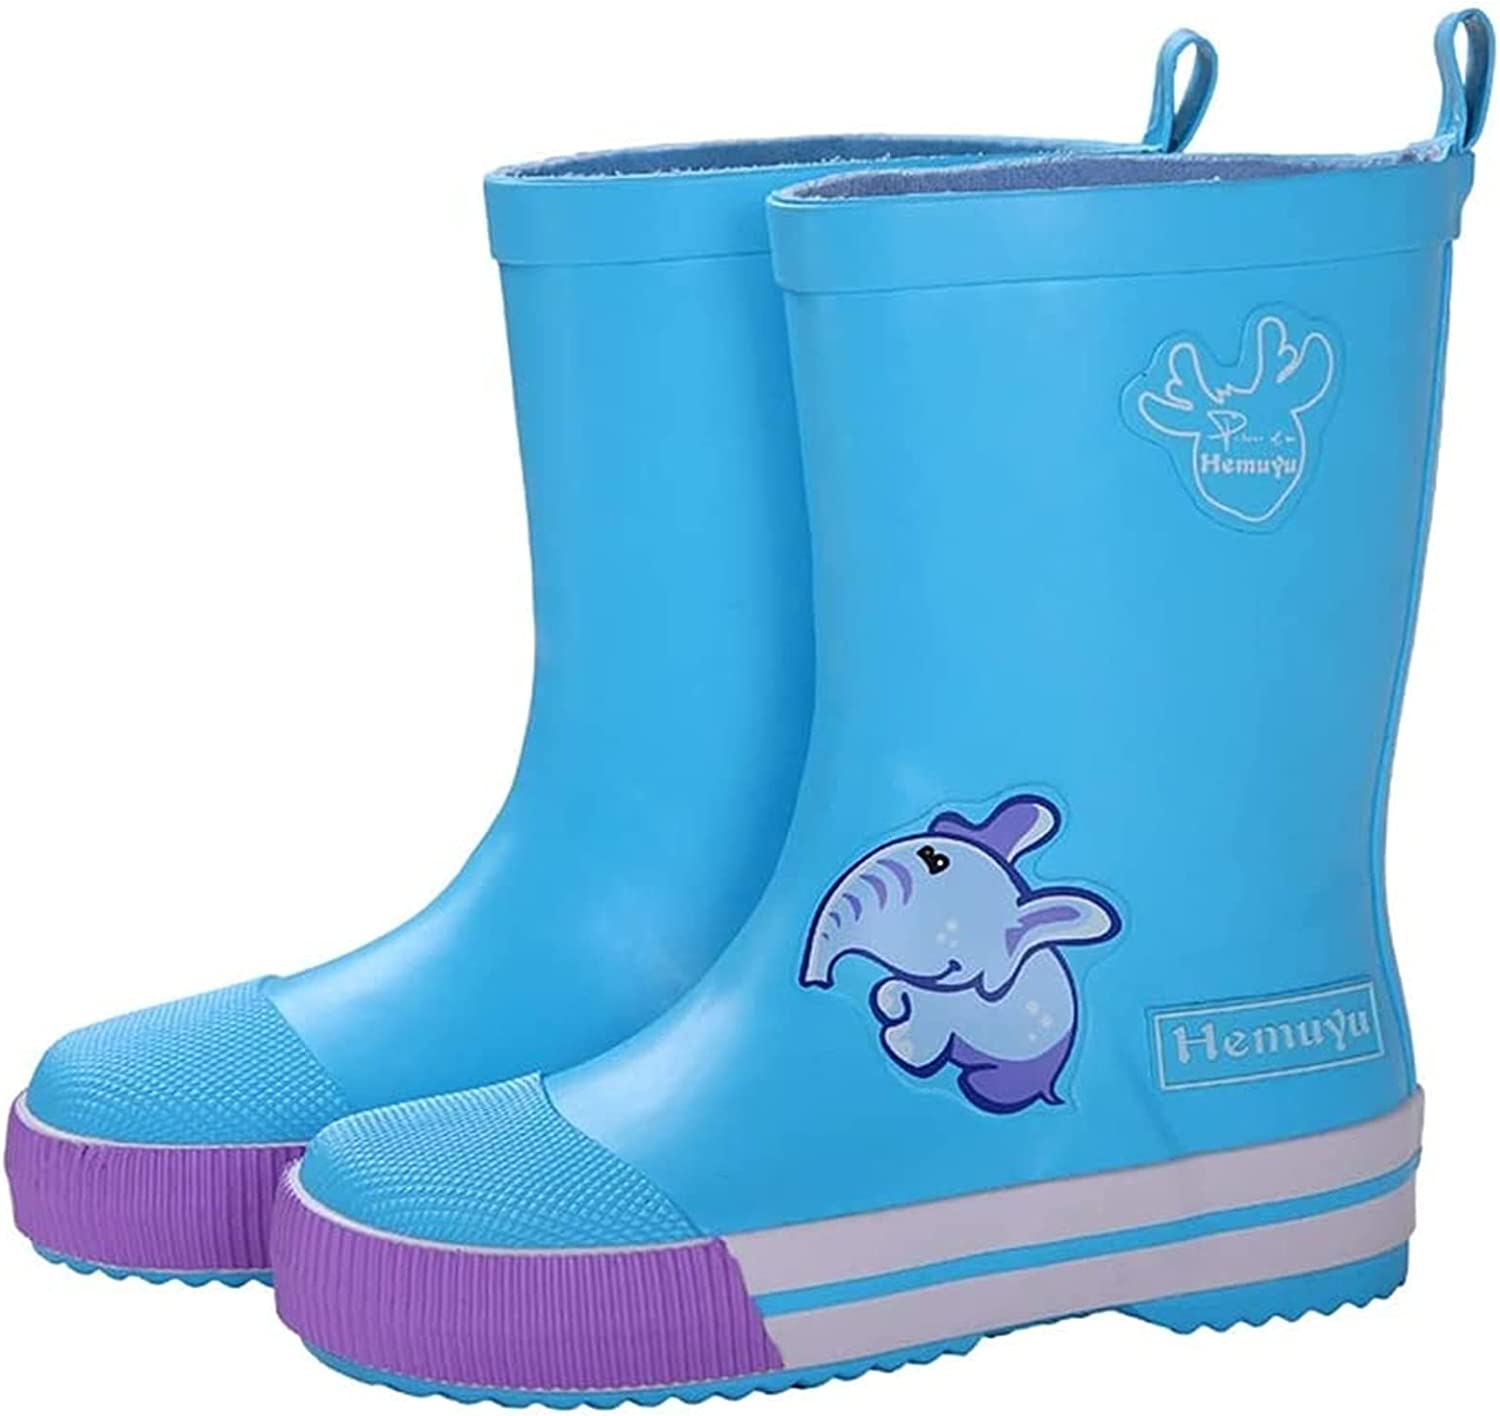 SYZHIWUJIA Rain Boots Children's Rubber Rain Boots Waterproof Shoes for Pupils Four Seasons Boys and Girls Rain Boots Non-Slip Sole Water Shoes Children's rain Boots (Color : Blue, Size : 19.5cm)